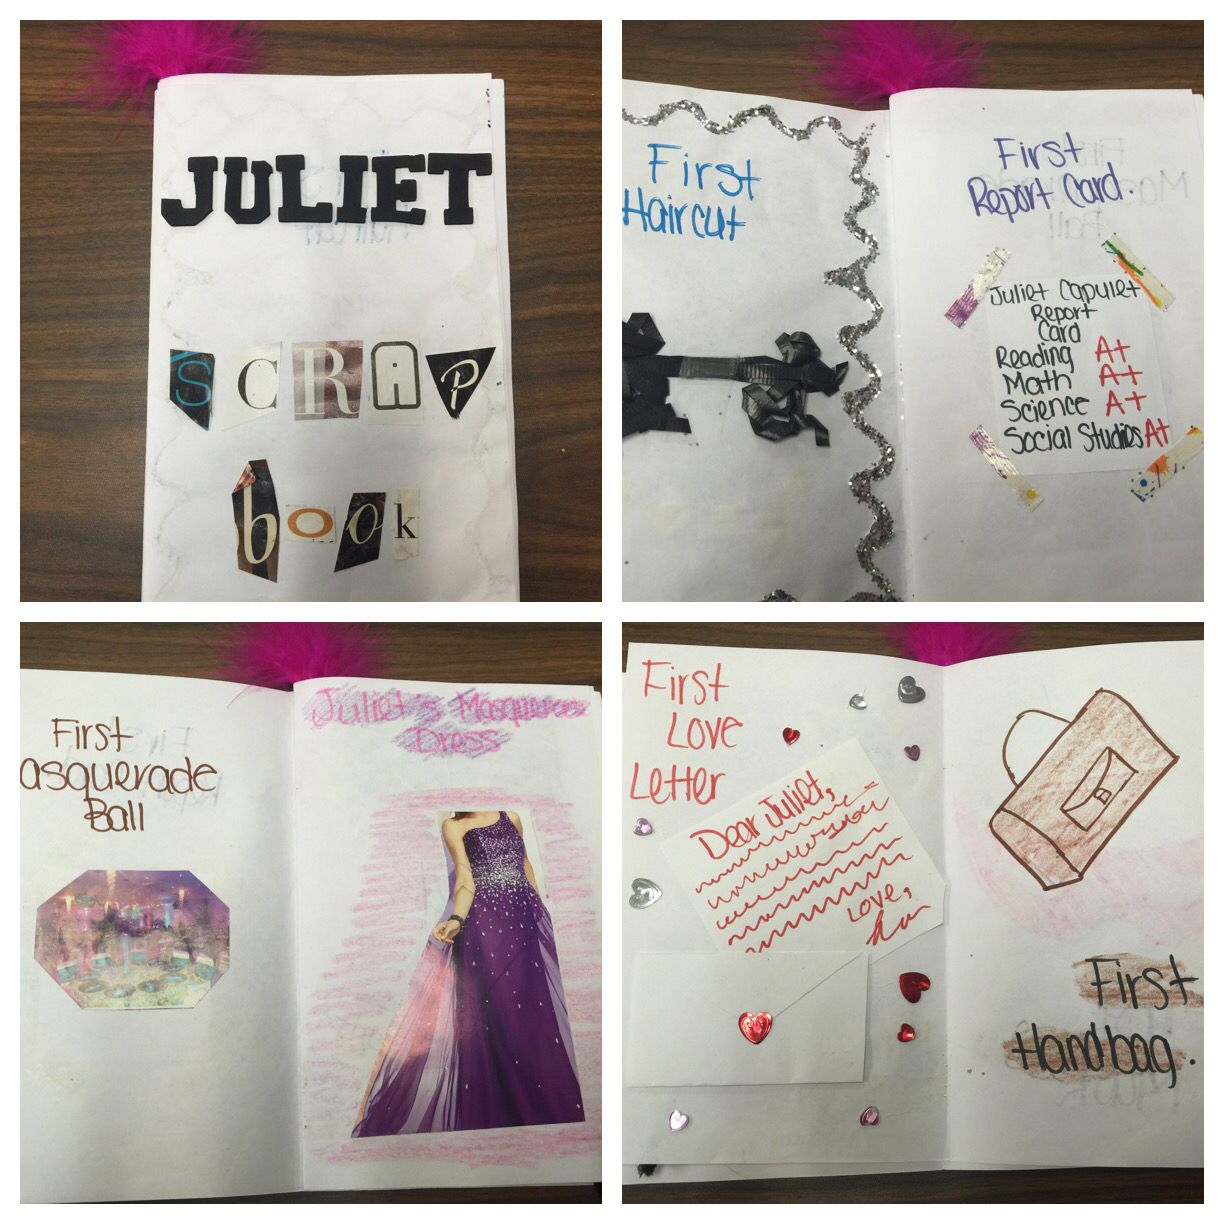 a literary analysis of fate in romeo and juliet by william shakespeare The major themes of romeo and juliet include love v lust this analysis of themes in romeo and juliet is intended to help you enjoy the play as you read and discuss it shakespeare, william prentice hall literature, timeless voices.